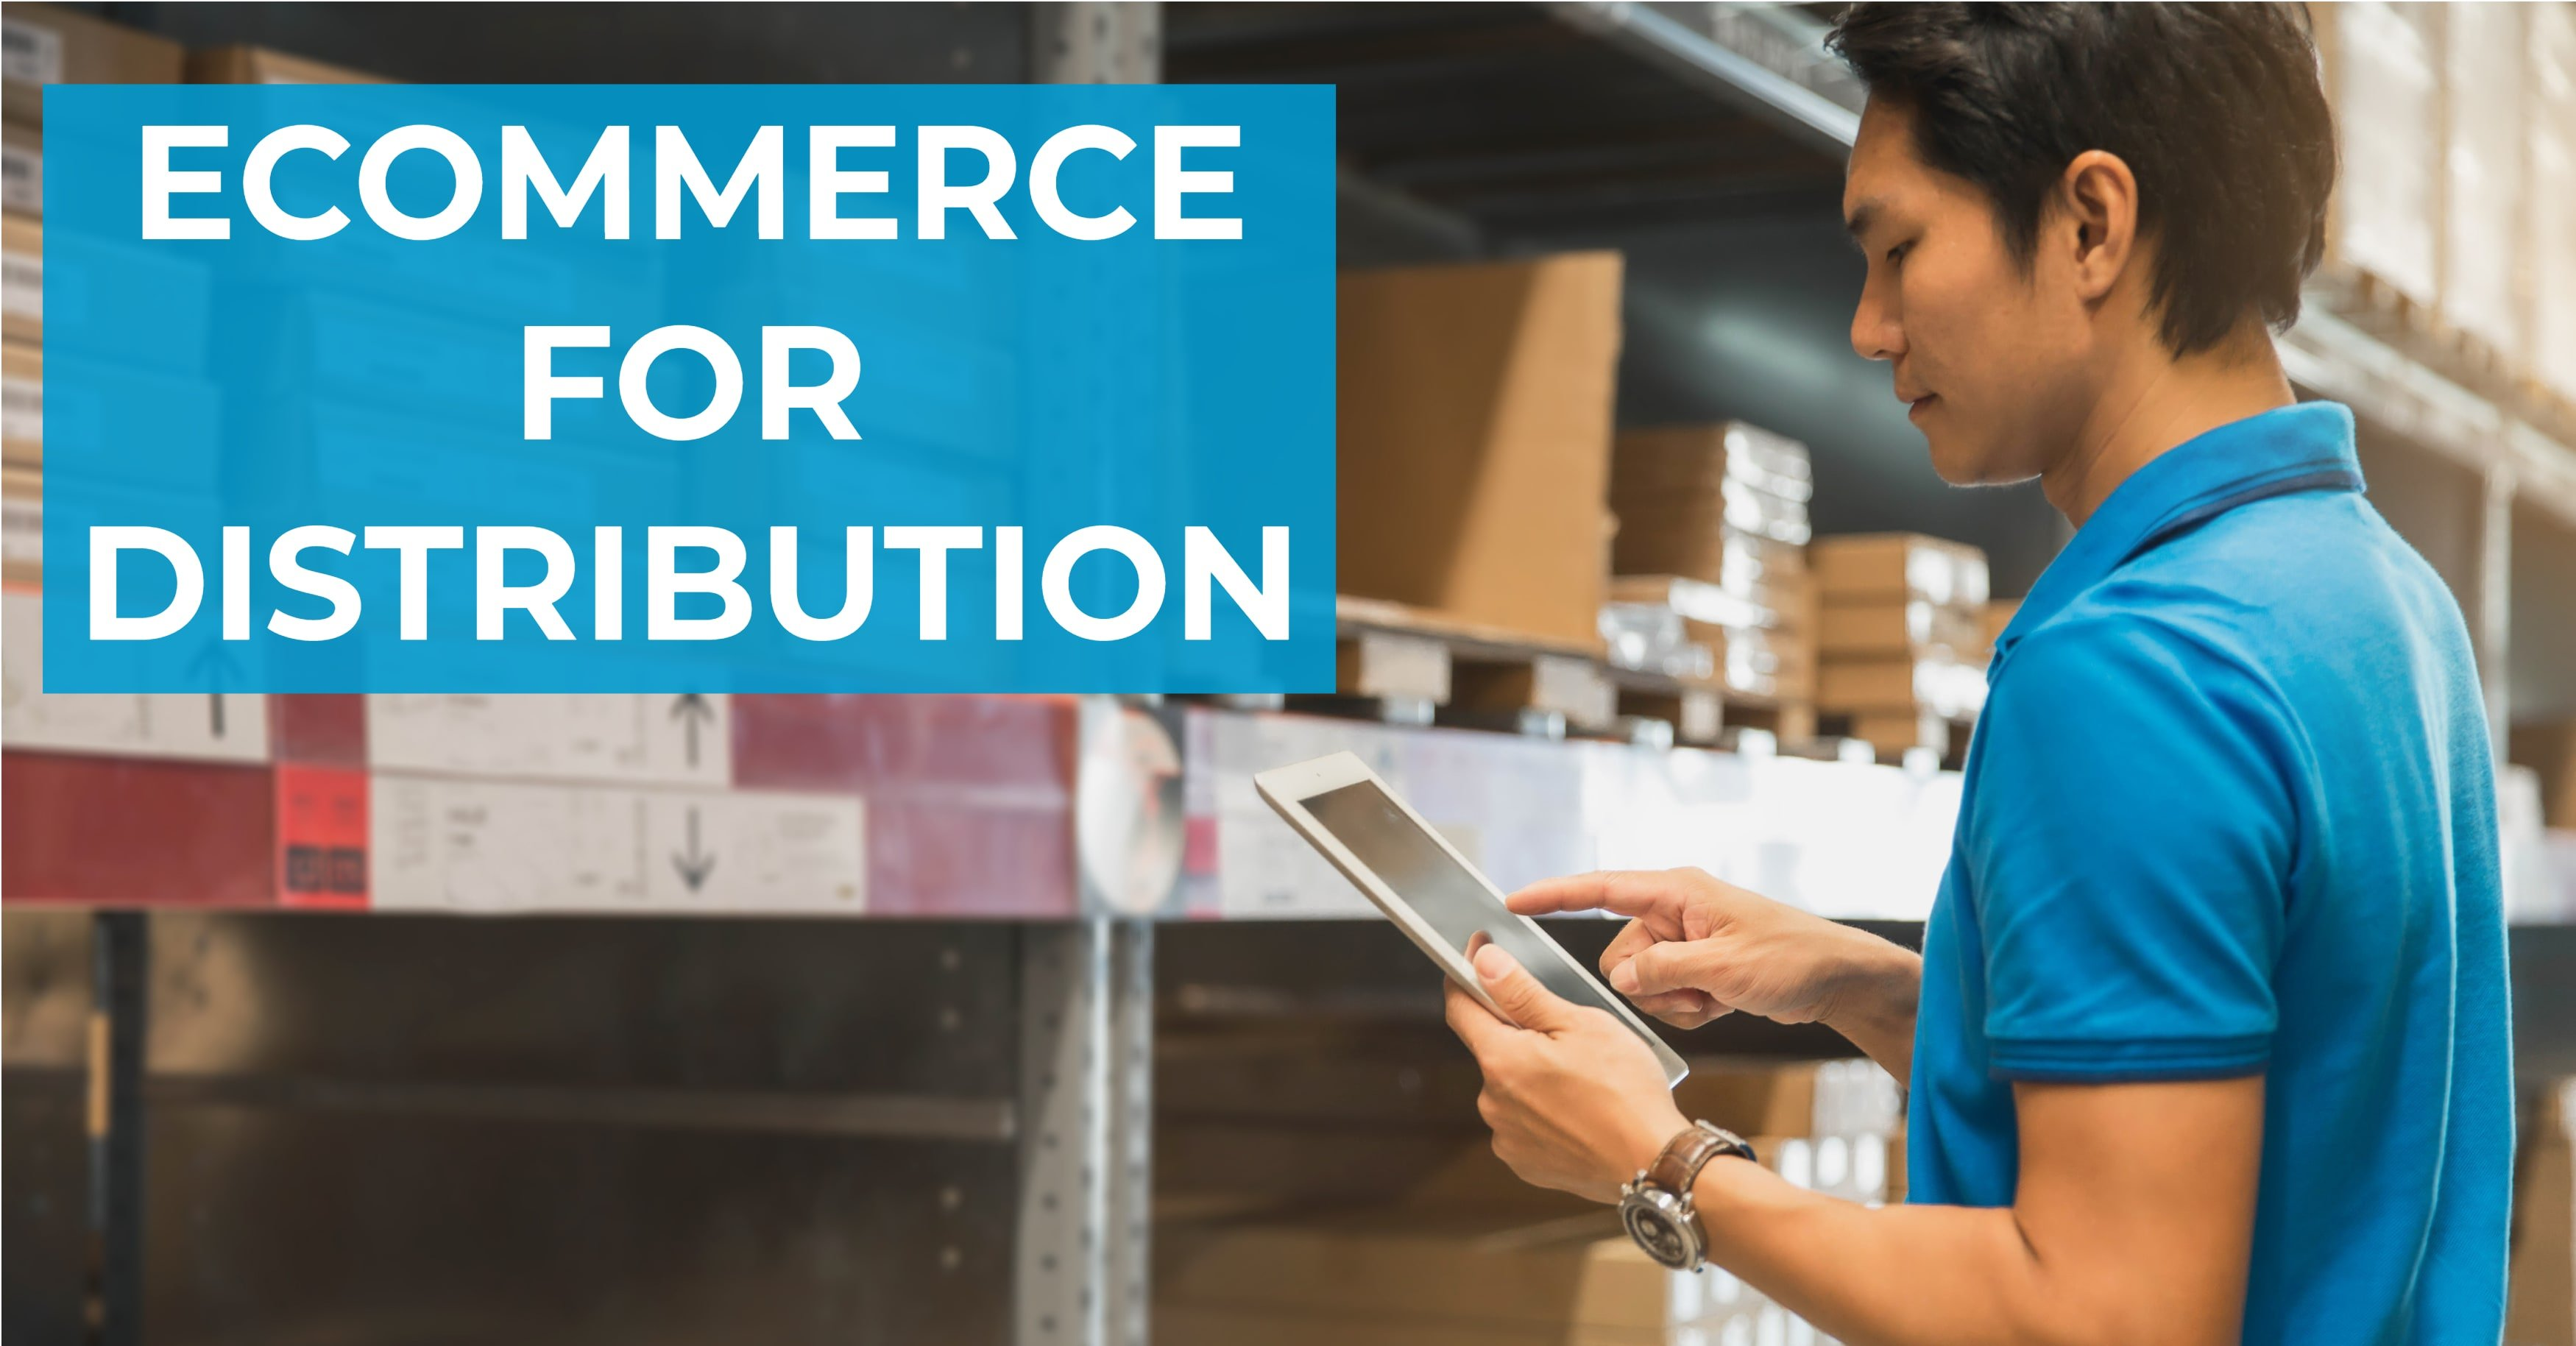 eCommerce Distribution